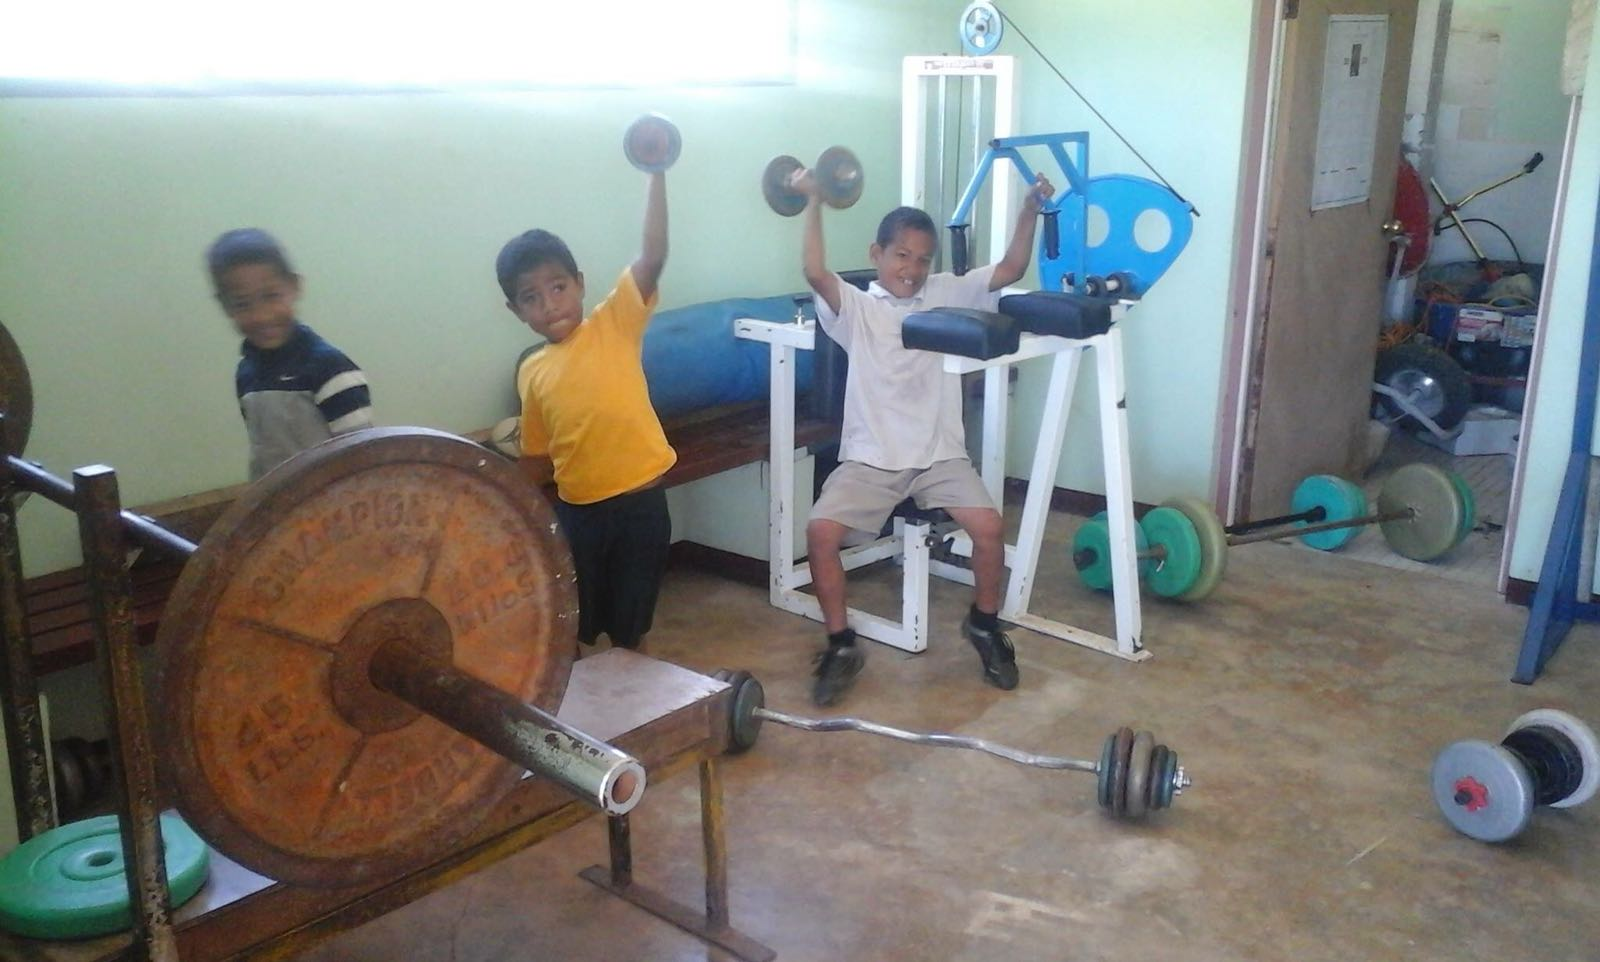 Local Tongan kids testing the gym equipment we sent over in a shipment from Australia